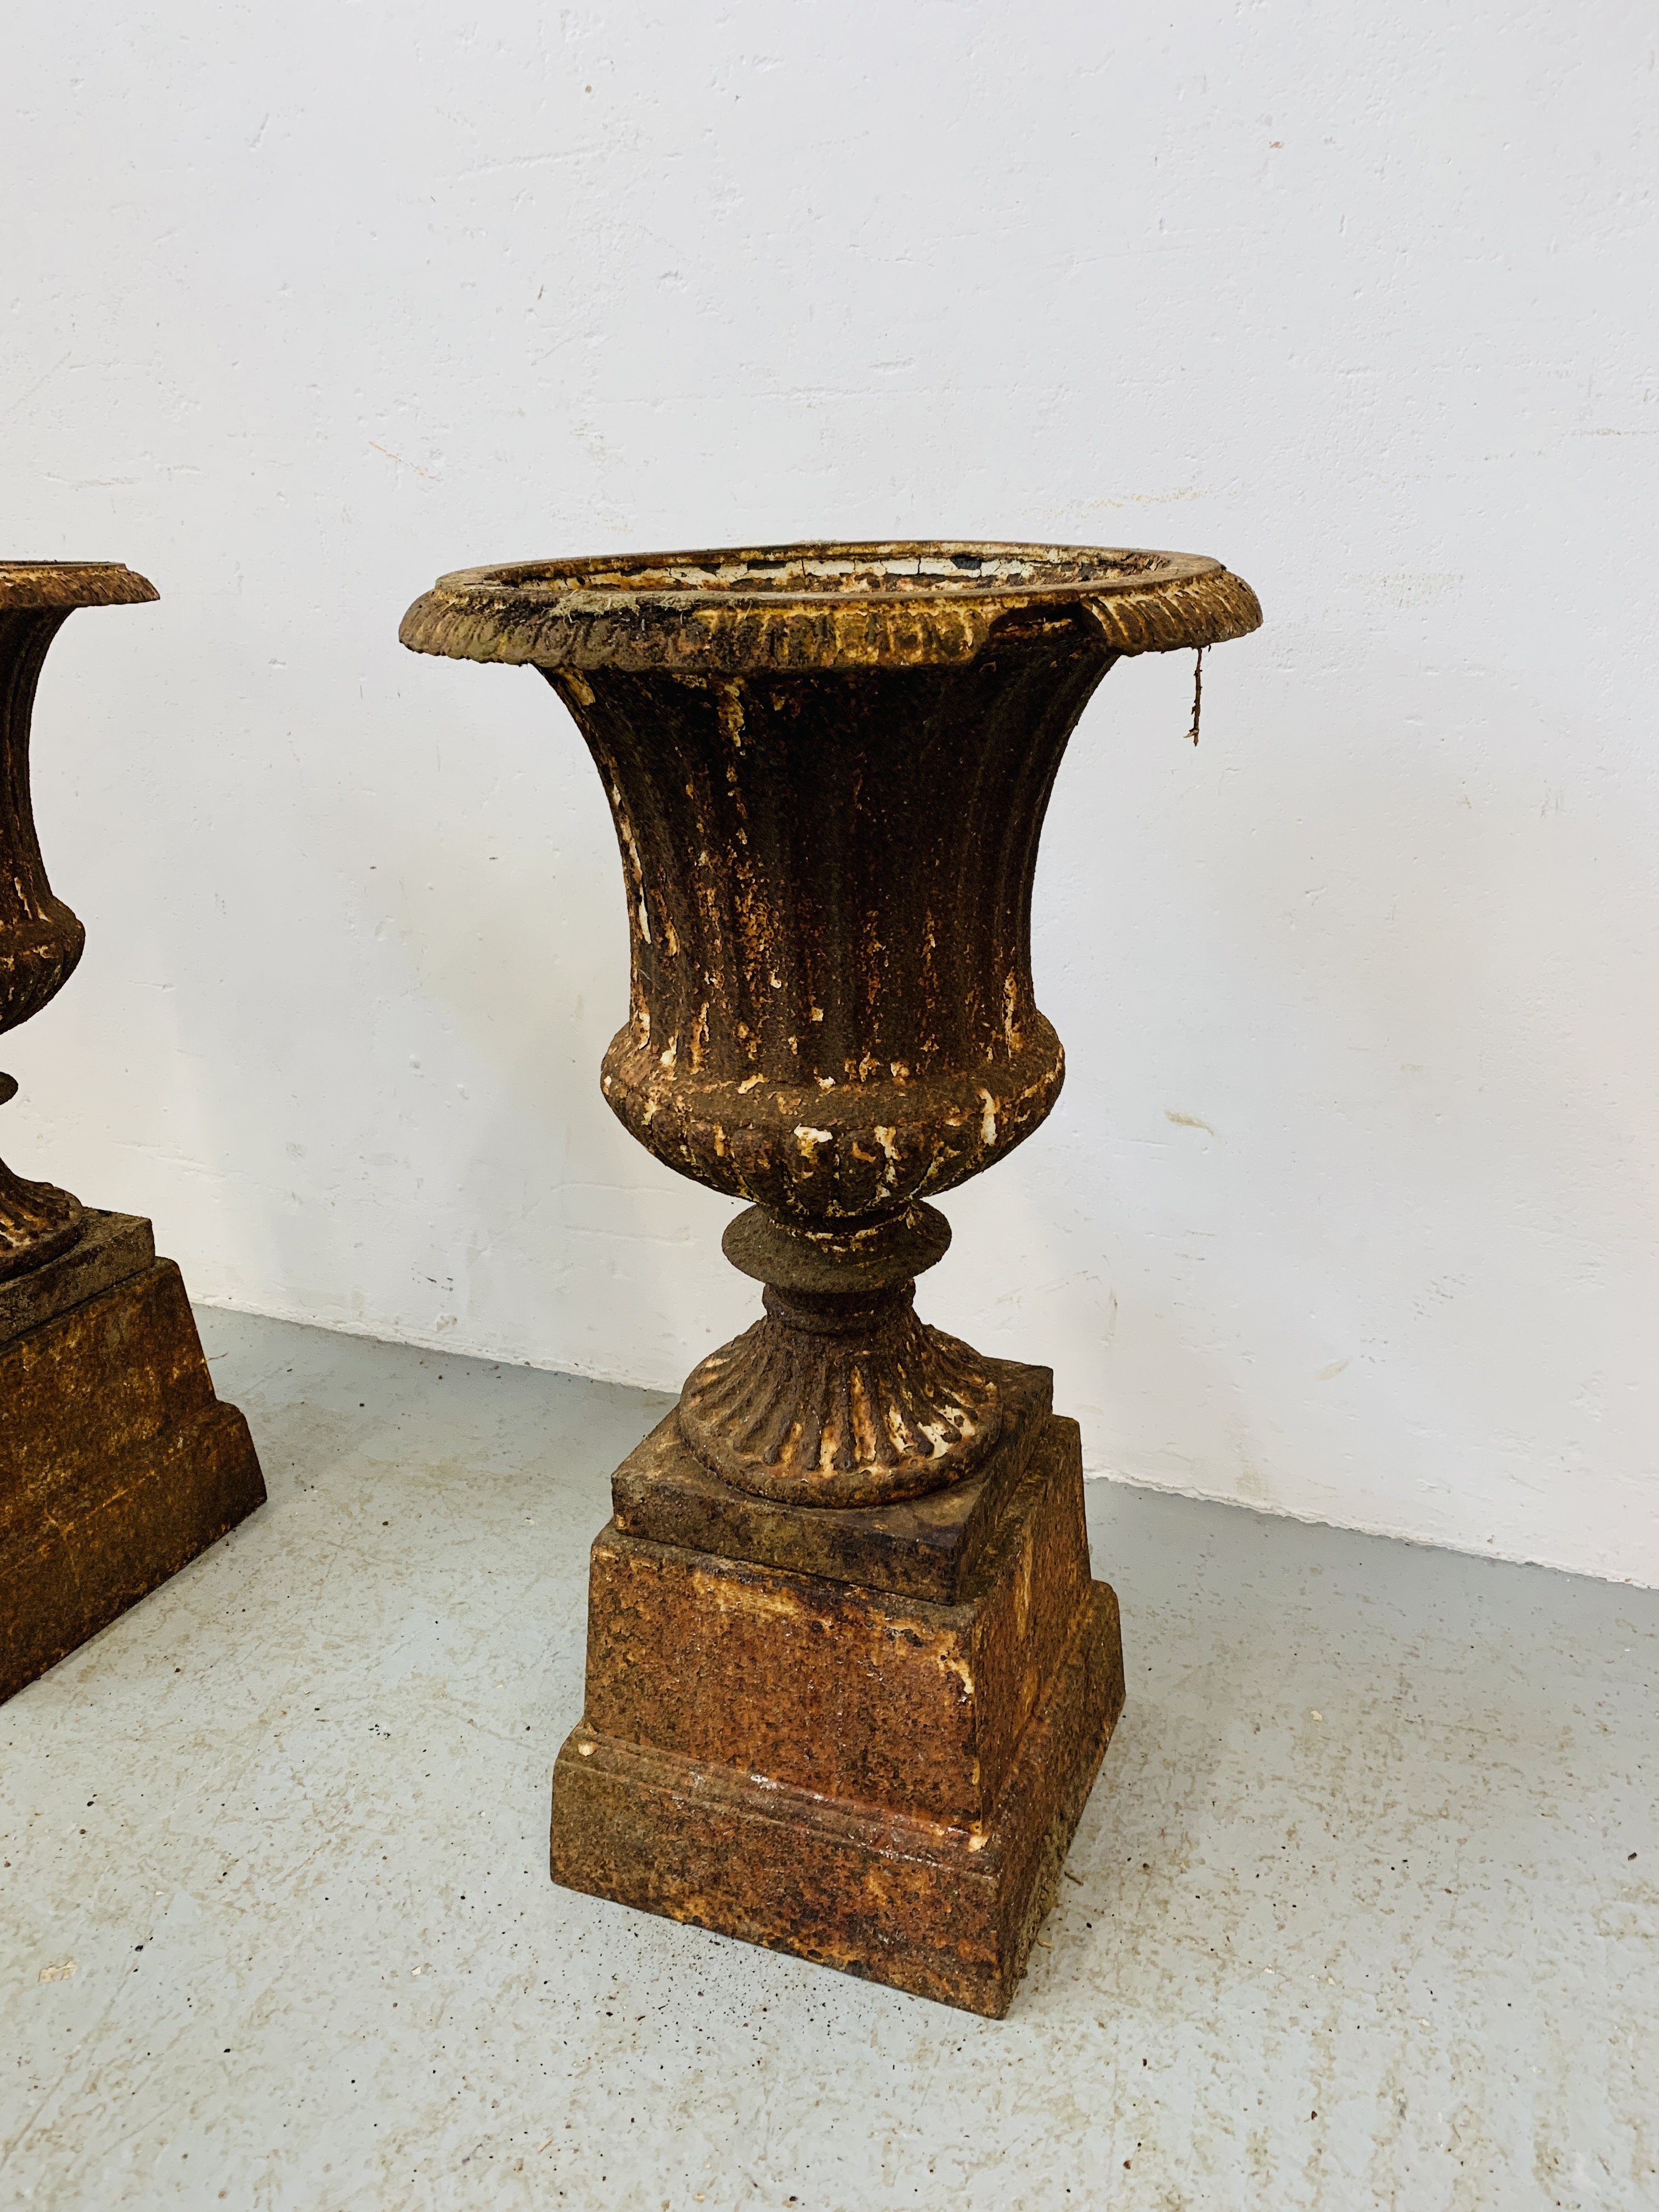 A PAIR OF CAST IRON TULIP SHAPE GARDEN URNS ON STANDS A/F CONDITION - OVERALL HEIGHT 68CM. - Image 3 of 13